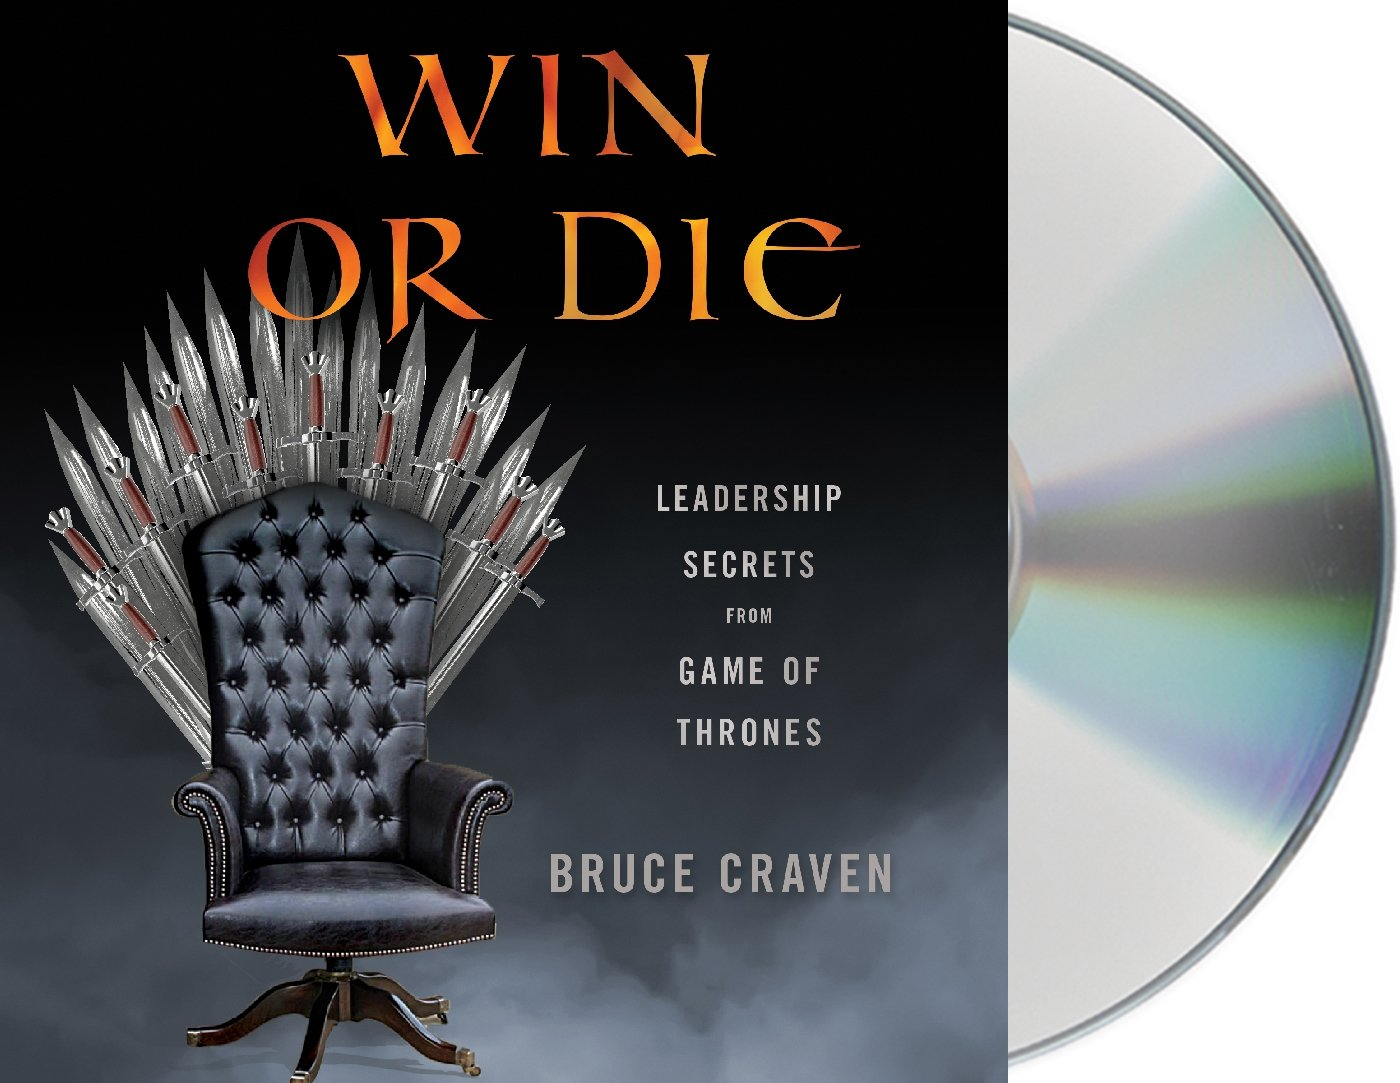 The 10 books also include, Win or Die, analyzes the lead characters in their leadership and management skills.